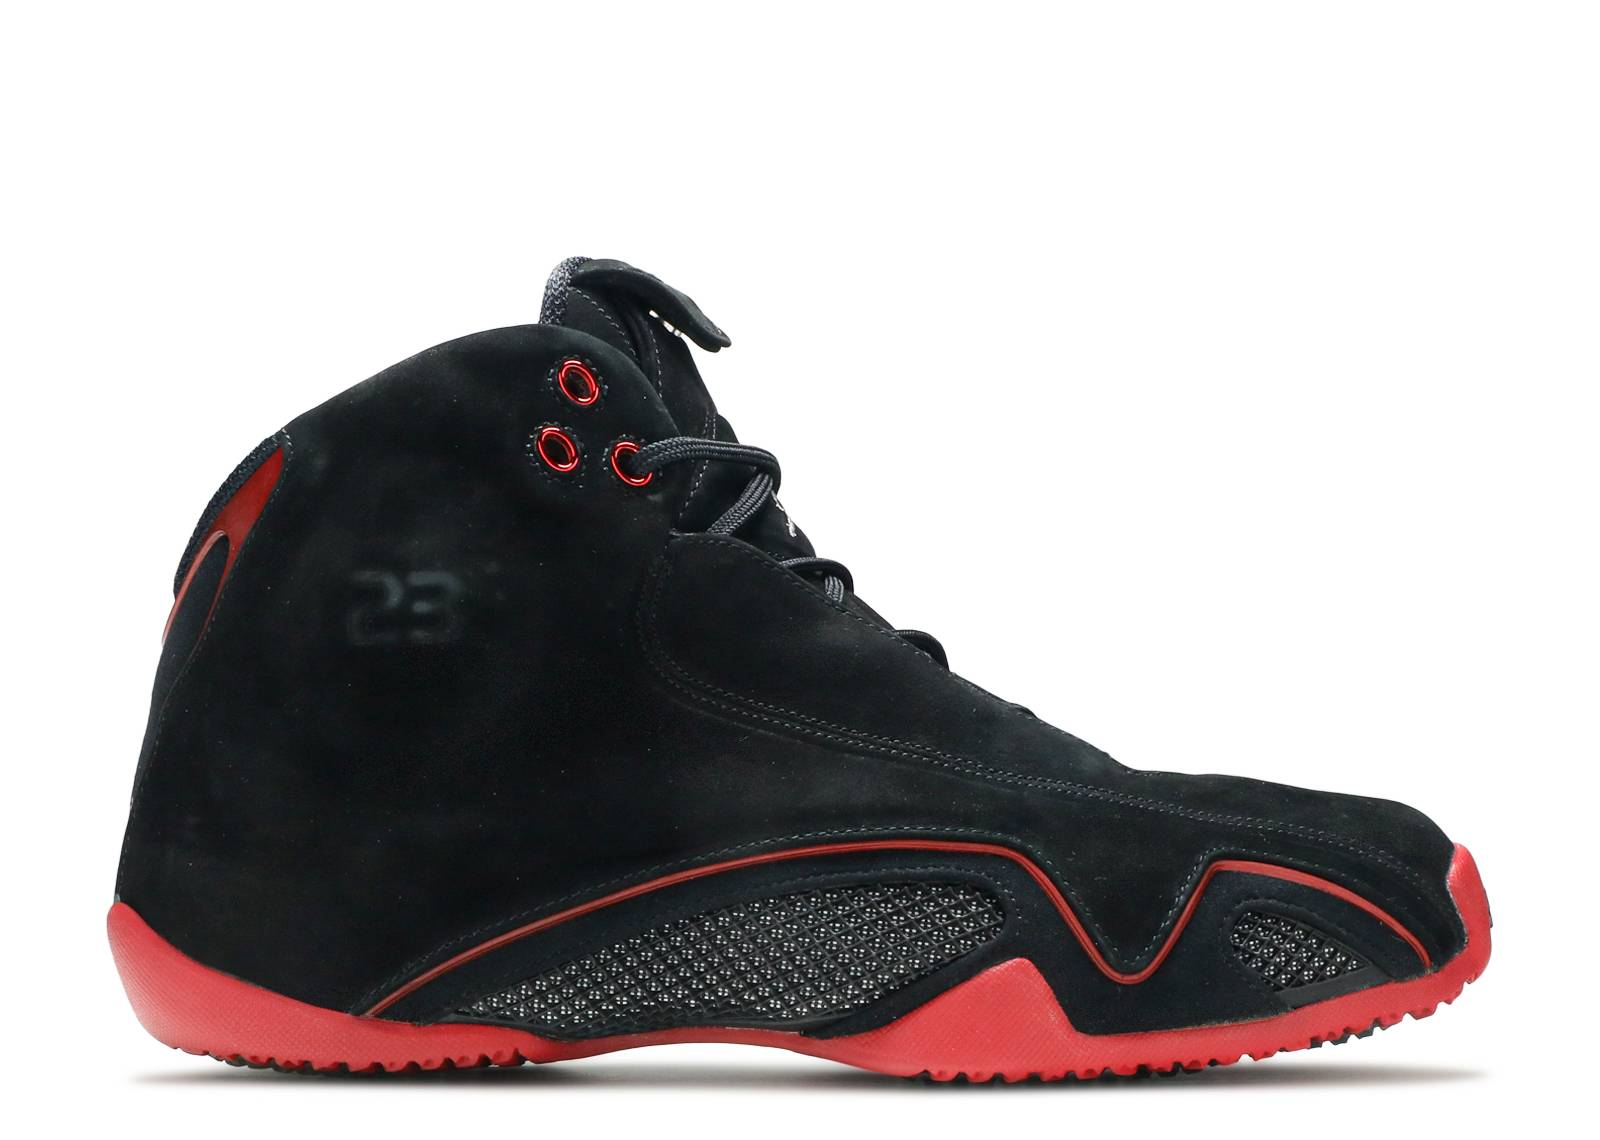 buy popular 97d41 1beae Air Jordan 21 (XXI) Shoes - Nike   Flight Club